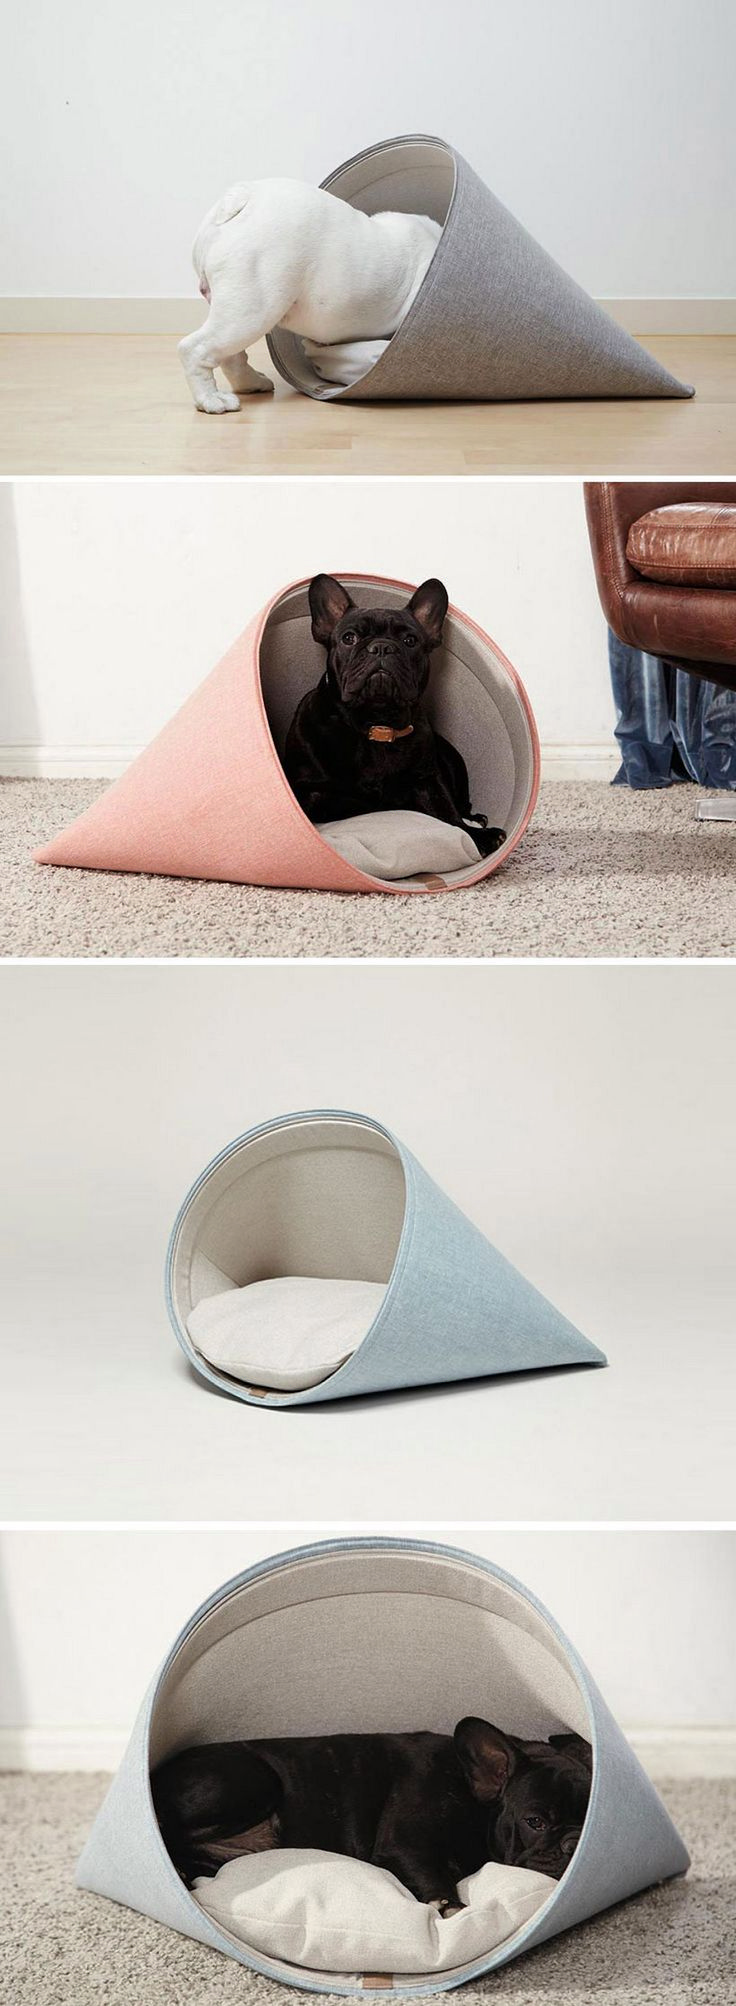 best para atún images on pinterest kitty cats pets and cat condo